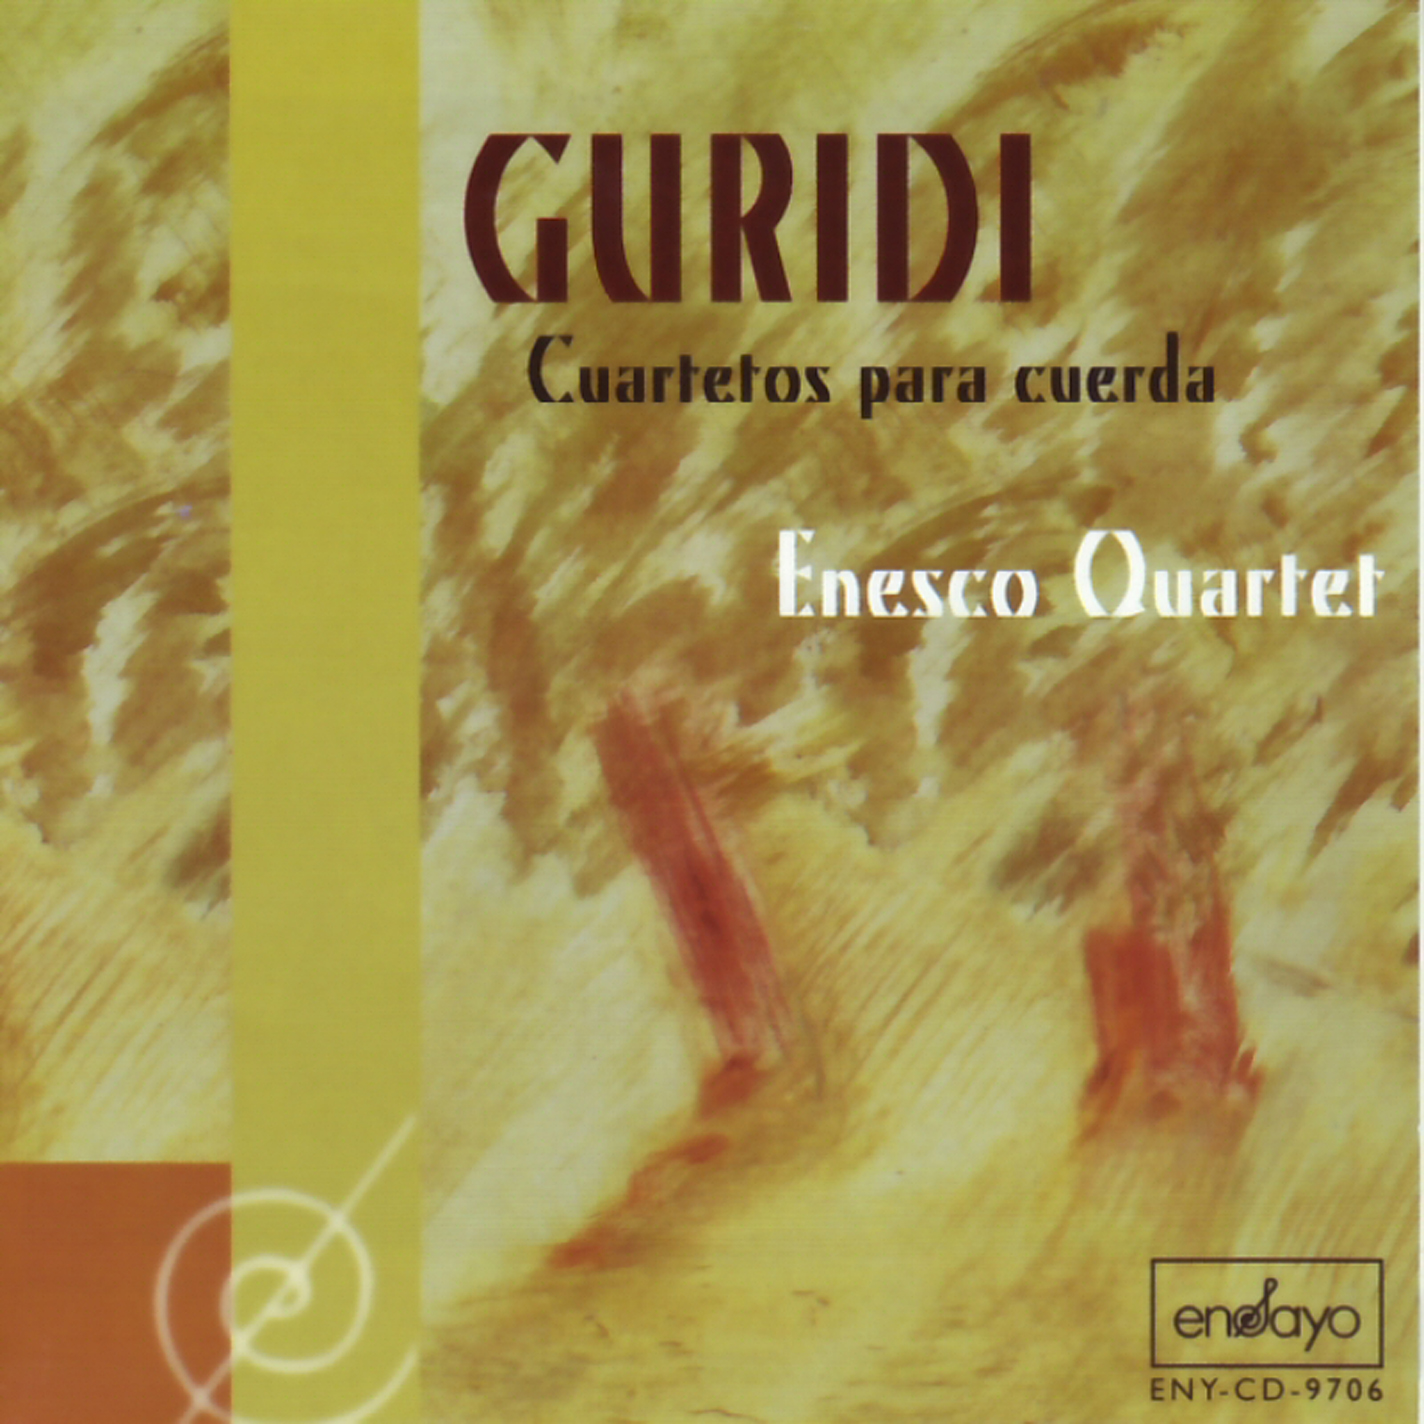 String Quartet No. 1 in G Major, String Quartet No. 1 in G Major: III. Adagio non troppo lento